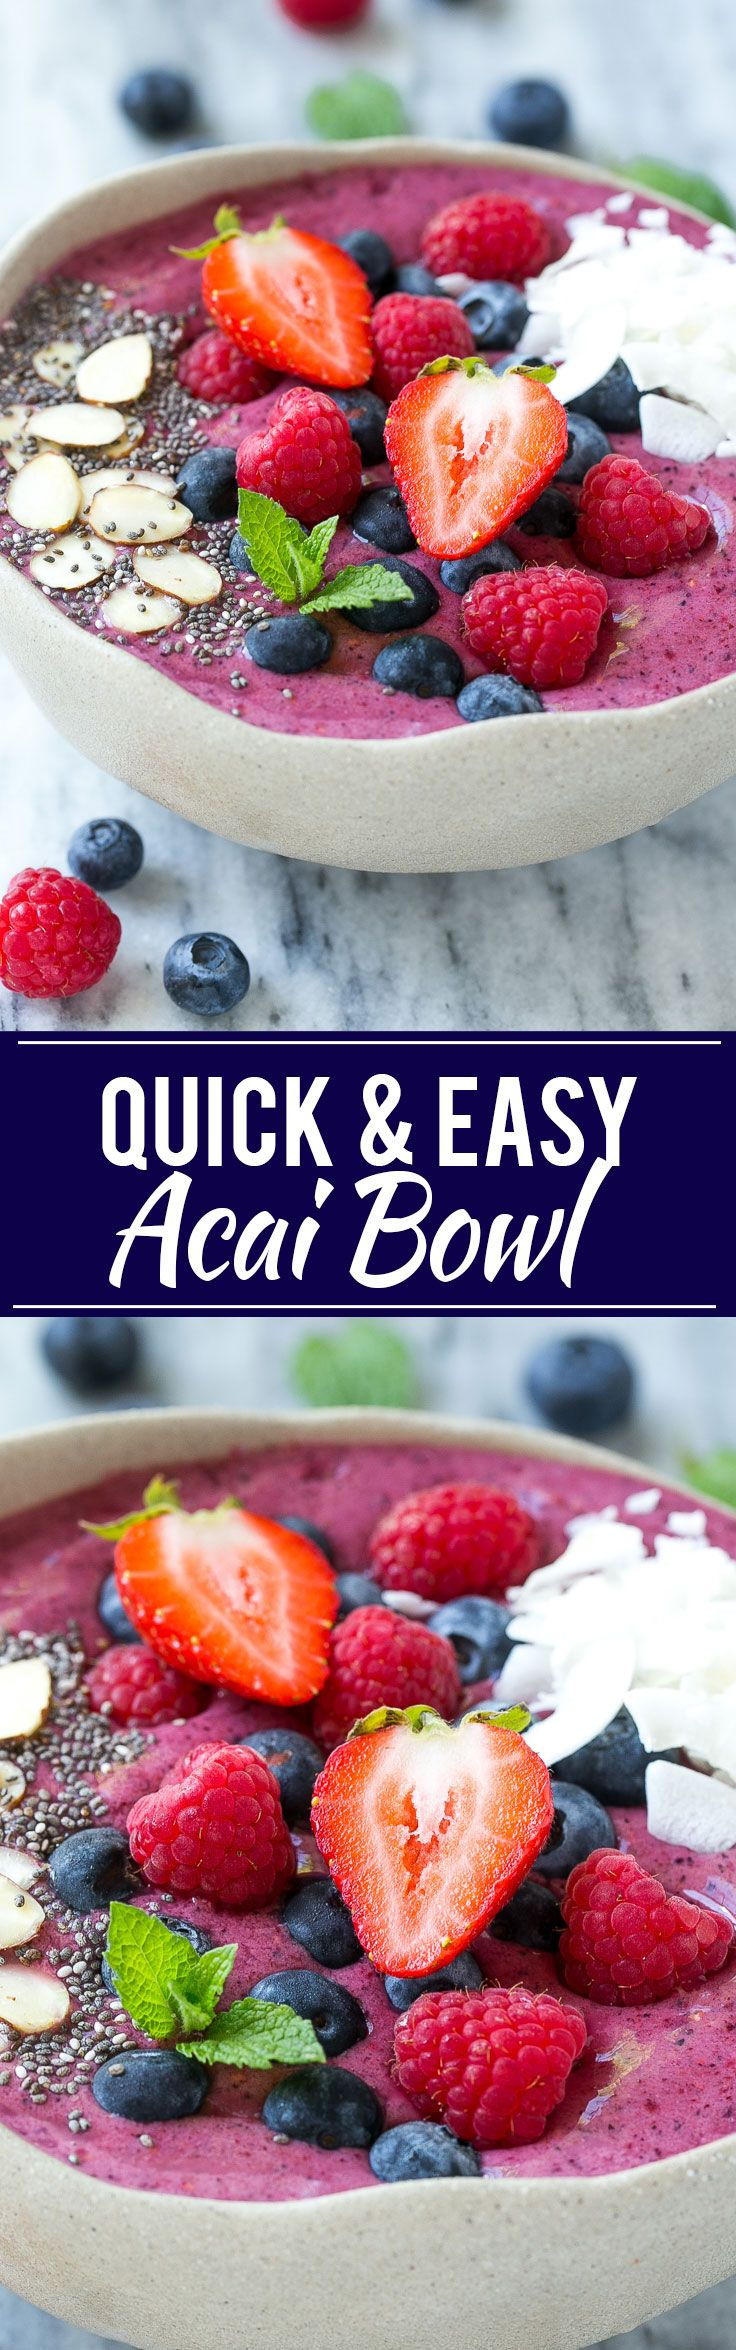 This acai bowl recipe is a smoothie made with fruit, acai berry puree and yogurt…